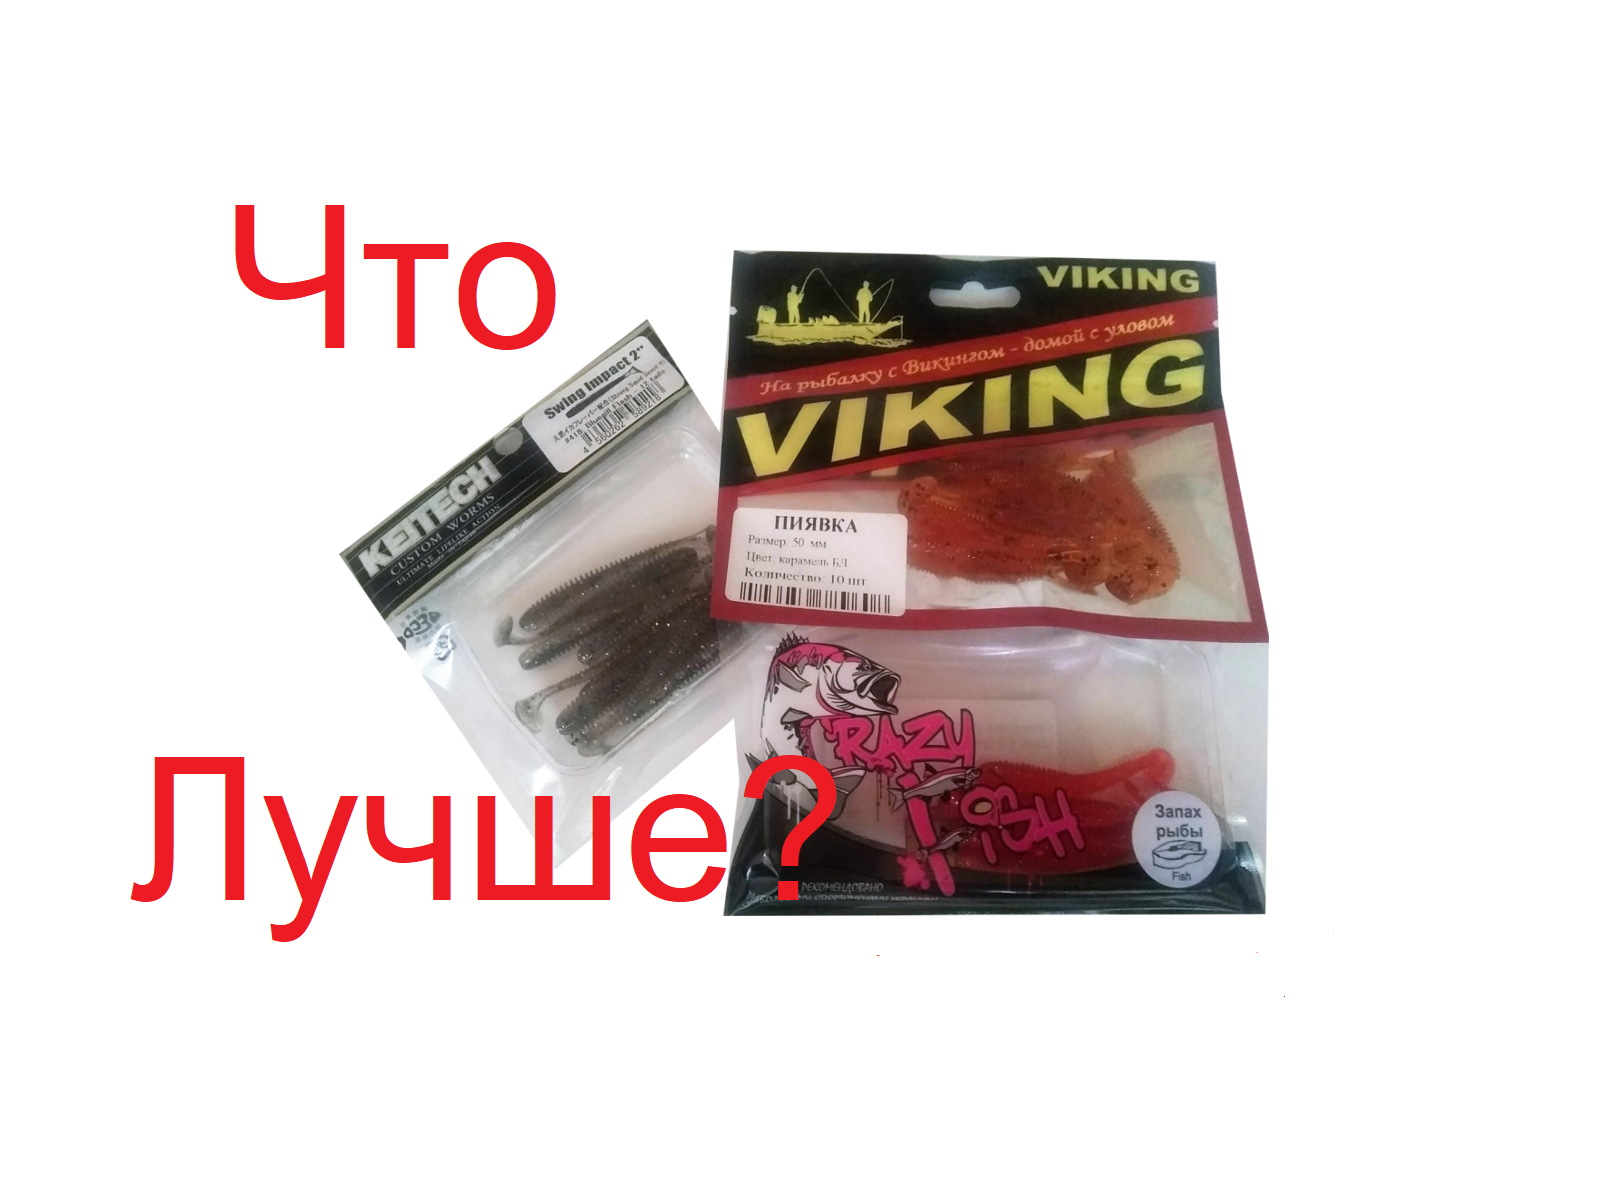 Копия vs оригинал. Swing Impact / Vibro worm / Viking пиявка